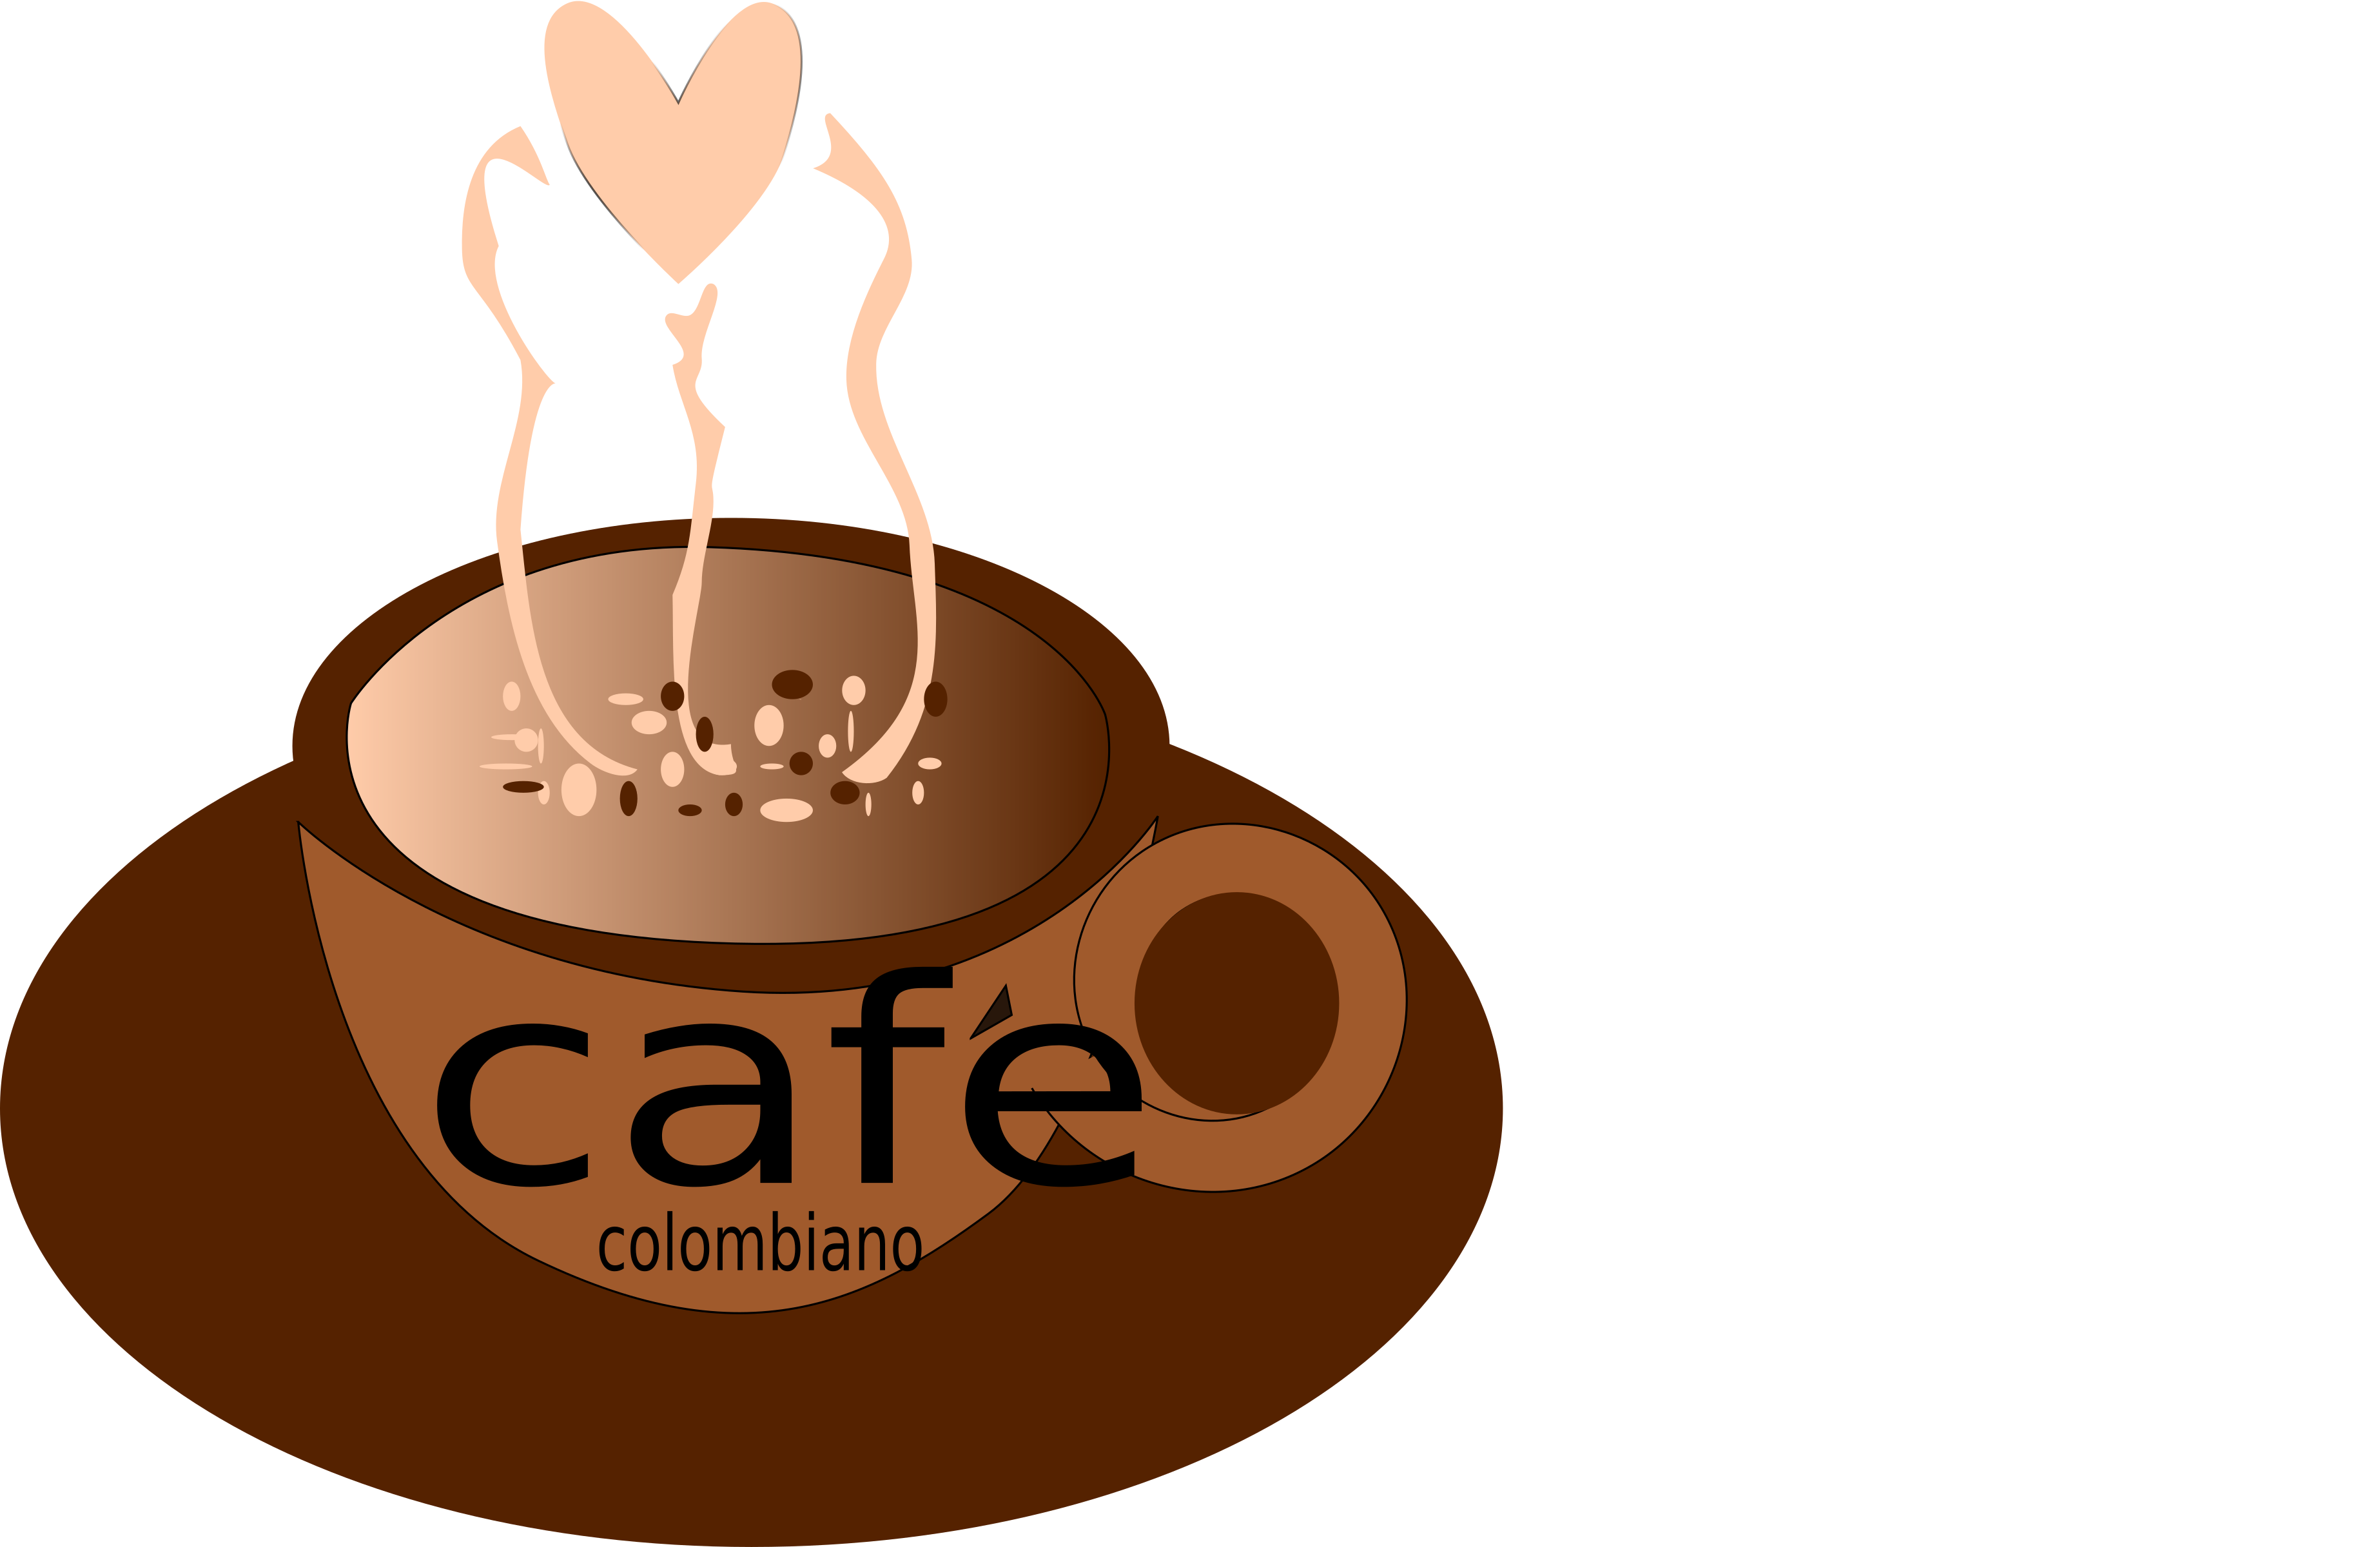 café colombiano by hpimienta